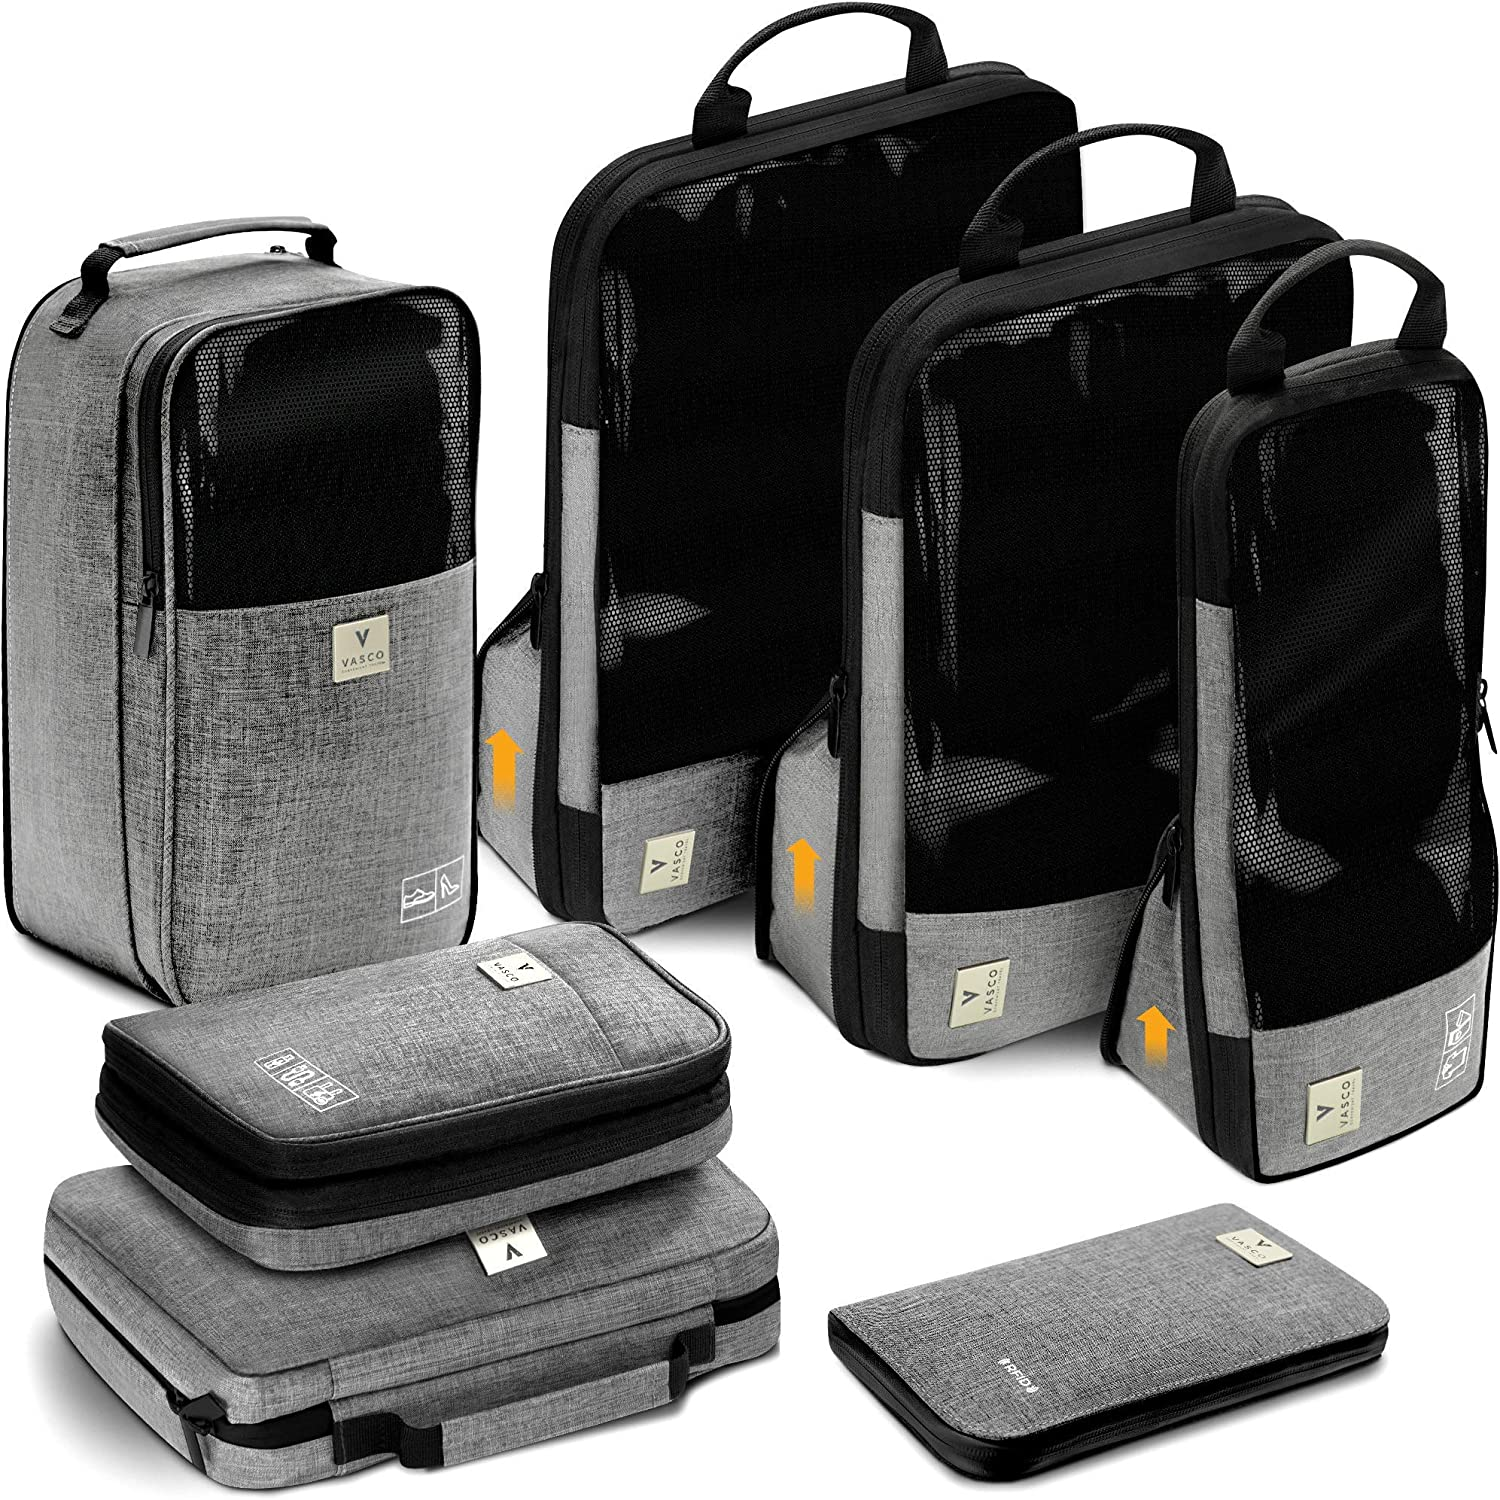 VASCO Compression Packing Cubes Set